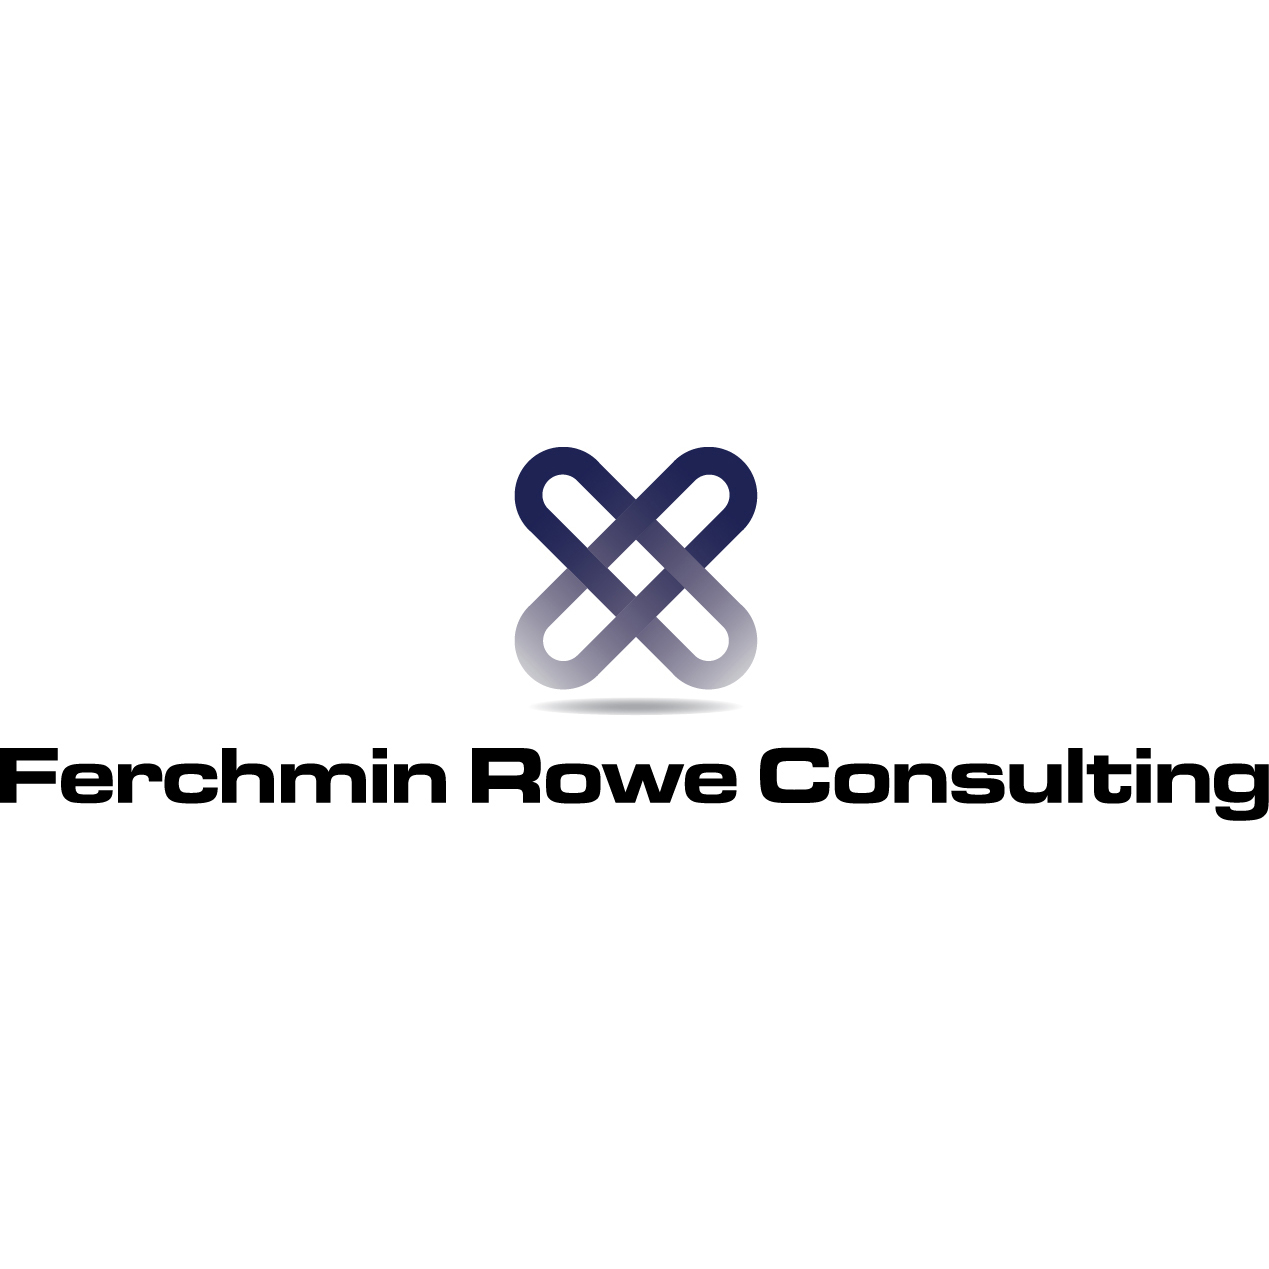 Ferchmin Rowe Consulting